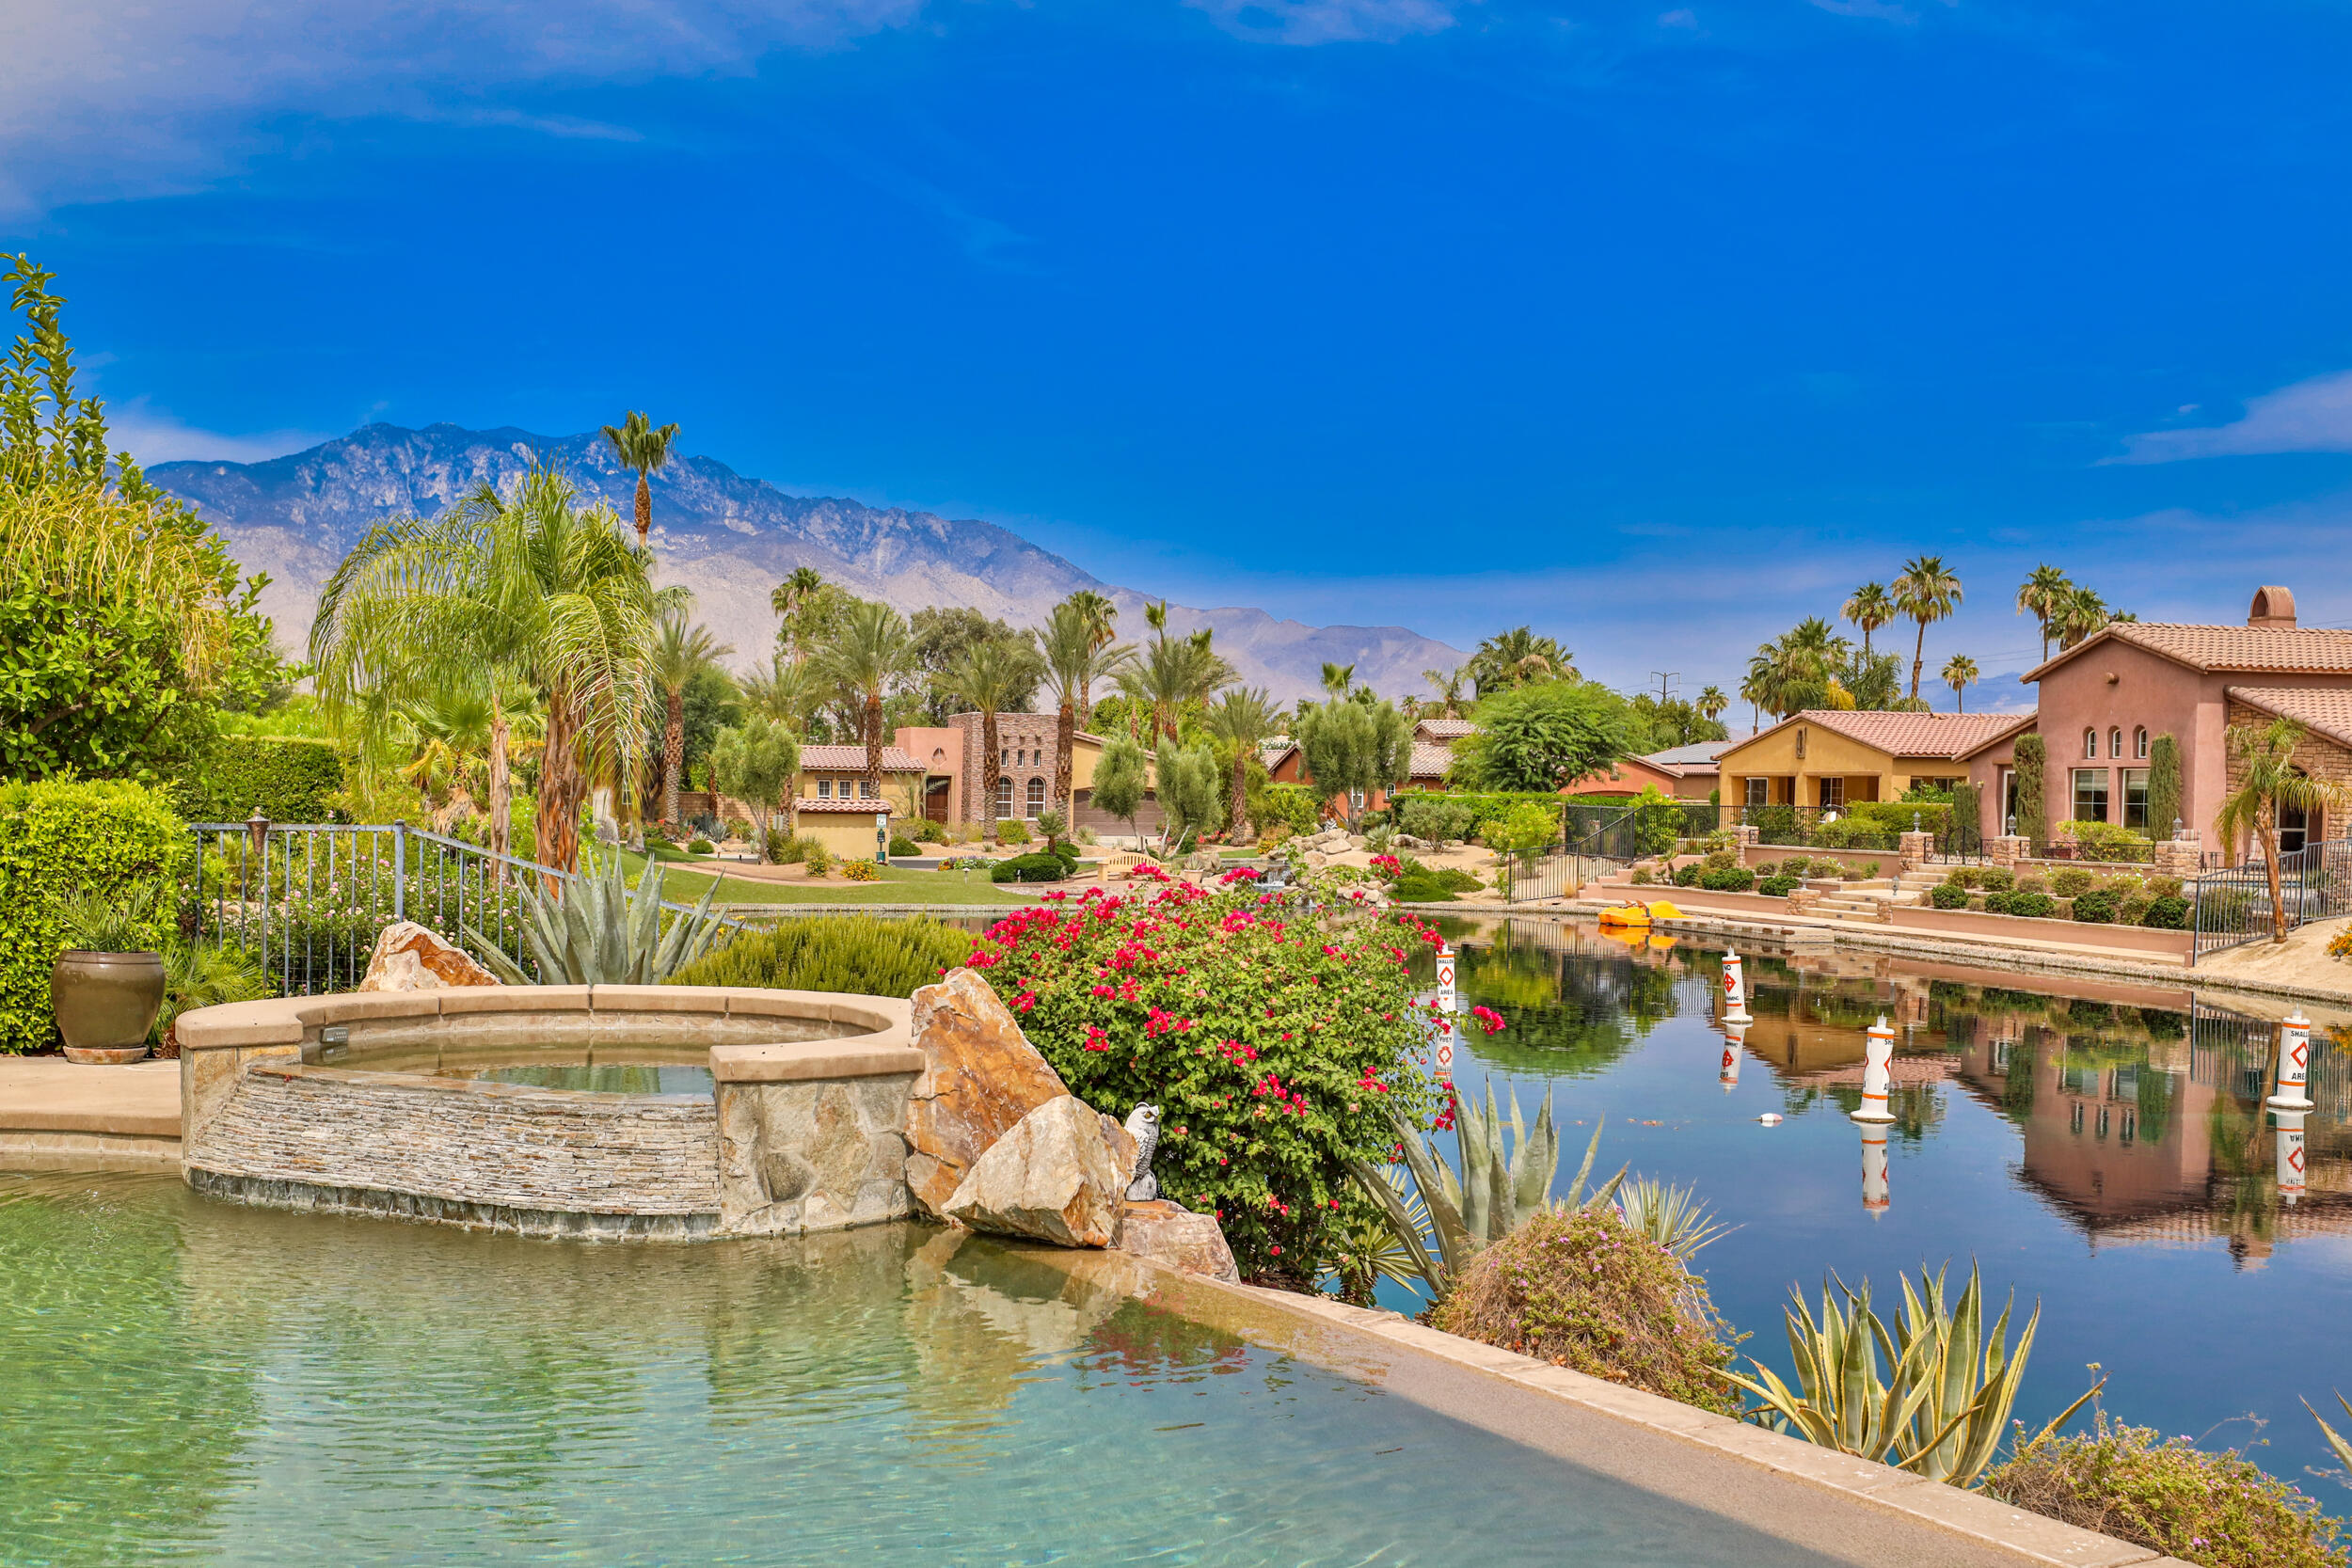 Gently lived in vacation home of original owners.  Over 13,000 sq foot waterfront property located on quiet interior cul de sac of last waterfront development approved by Rancho Mirage.  With the Versailles travertine flooring, 9' ceilings and 8' crown moldings throughout, you will feel transported to the Tuscan countryside.  Enjoy views of the Santa Rosa Mountains from the backyard while lounging by the 42 foot infinity pool.  An entertainer's delight, the formal dining room flows directly into an intimate interior courtyard for you and your guests to relax with an after dinner drink while enjoying the star filled sky.  The large open concept kitchen and family room provide the perfect space for informal gatherings.  The master suite with French doors into the courtyard, is located away from the guest rooms ensuring you and your guests' privacy.     Santo Tomas is a beautiful, quiet and unique development for the sophisticated buyer.  The HOA is very well run with healthy reserves and the low HOA dues includes a sport and social membership at the beautiful Mission Hills Country Club.  Listed at over $50K less than the last similarly situated waterfront home sold in Santo Tomas.  Spoil yourself and enjoy the sophisticated lifestyle at Santo Tomas – don't wait as this one won't last long!